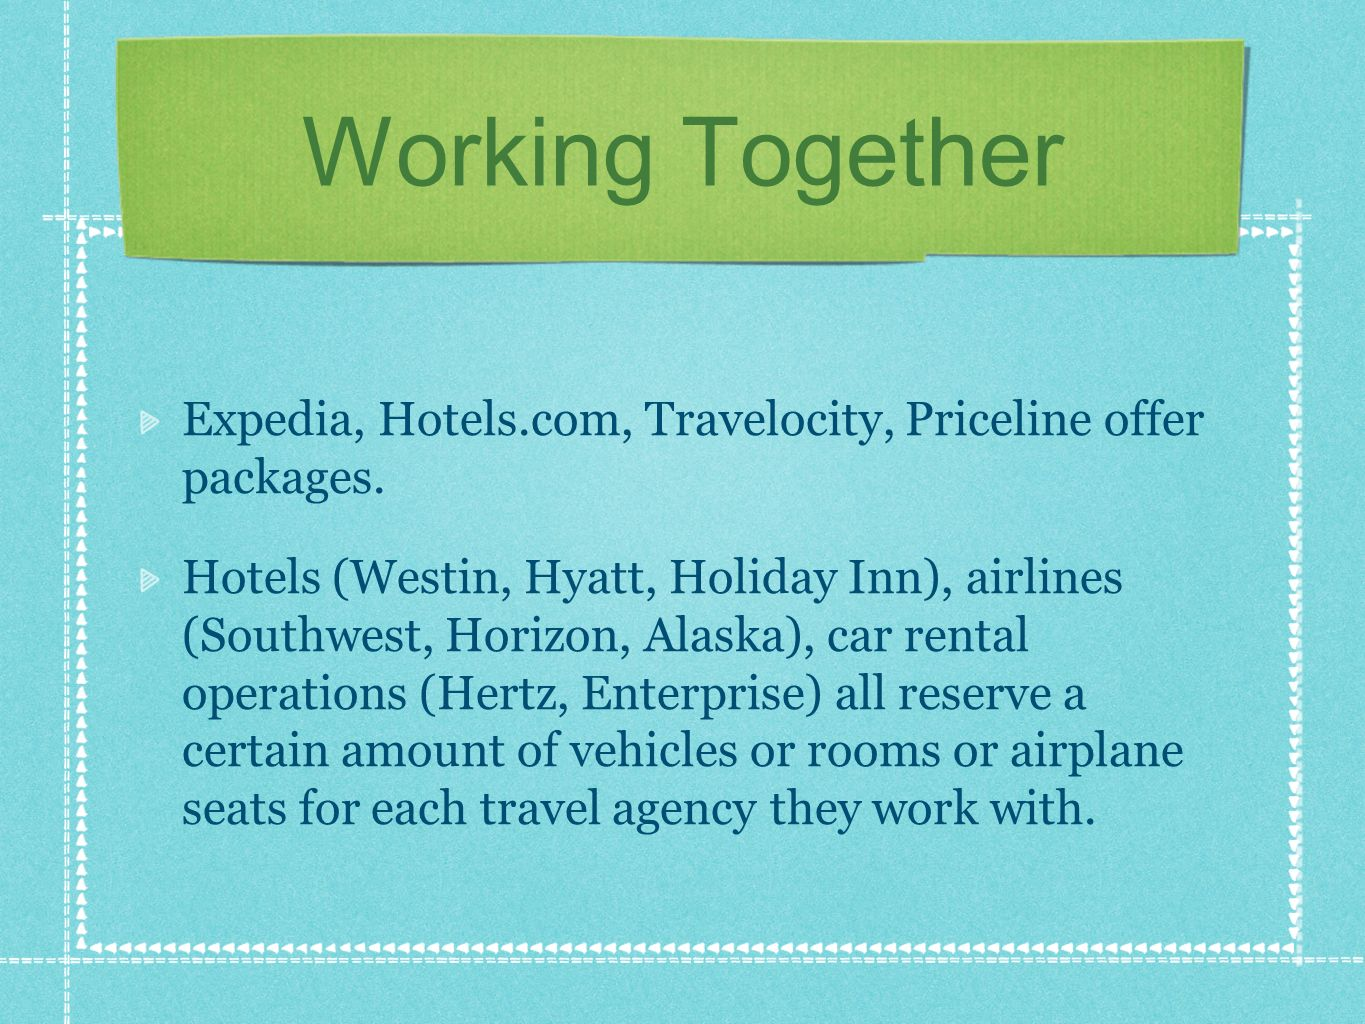 Working Together Expedia, Hotels.com, Travelocity, Priceline offer packages.